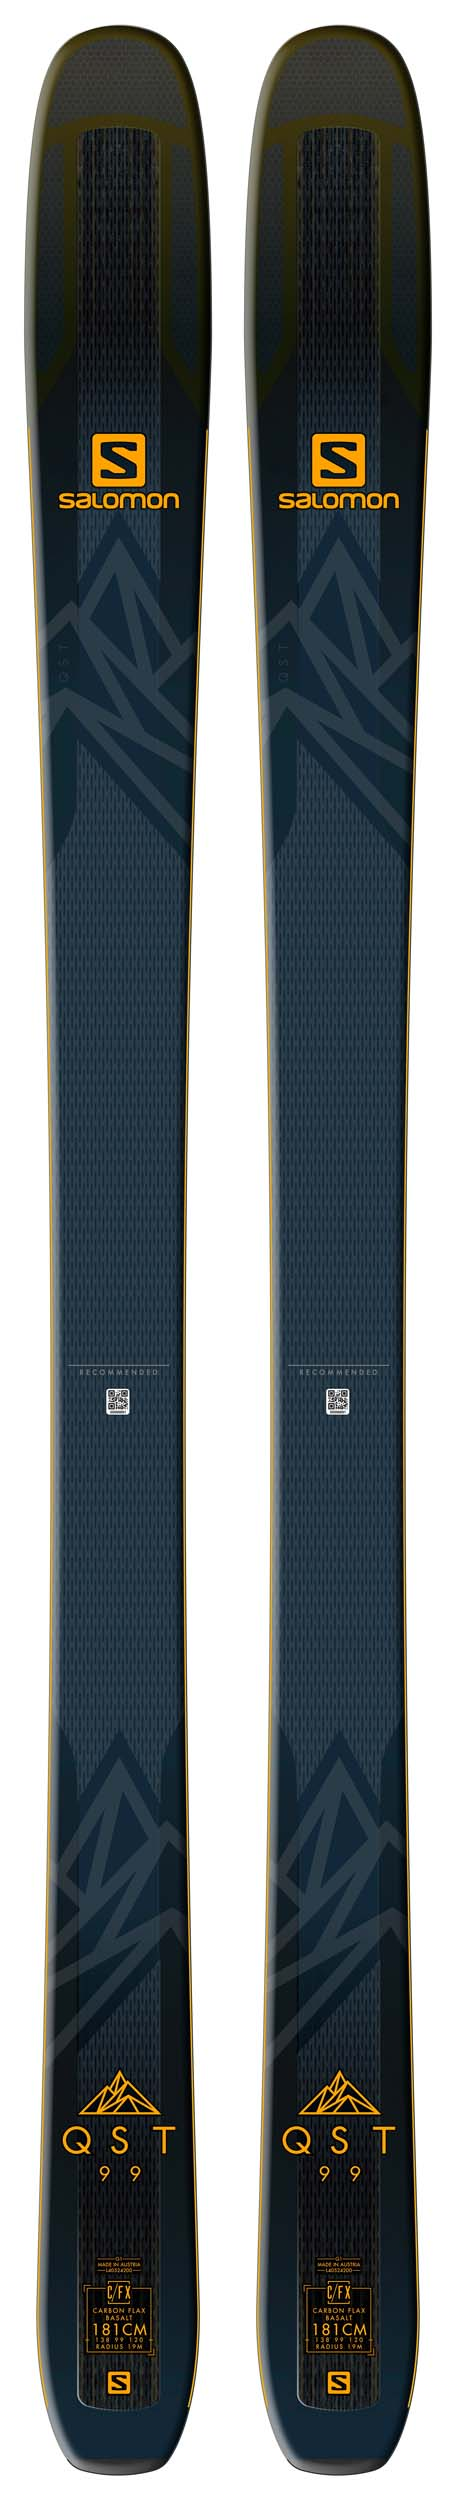 Salomon 2019 QST 99 Skis (Without Bindings / Flat) NEW !! 181cm